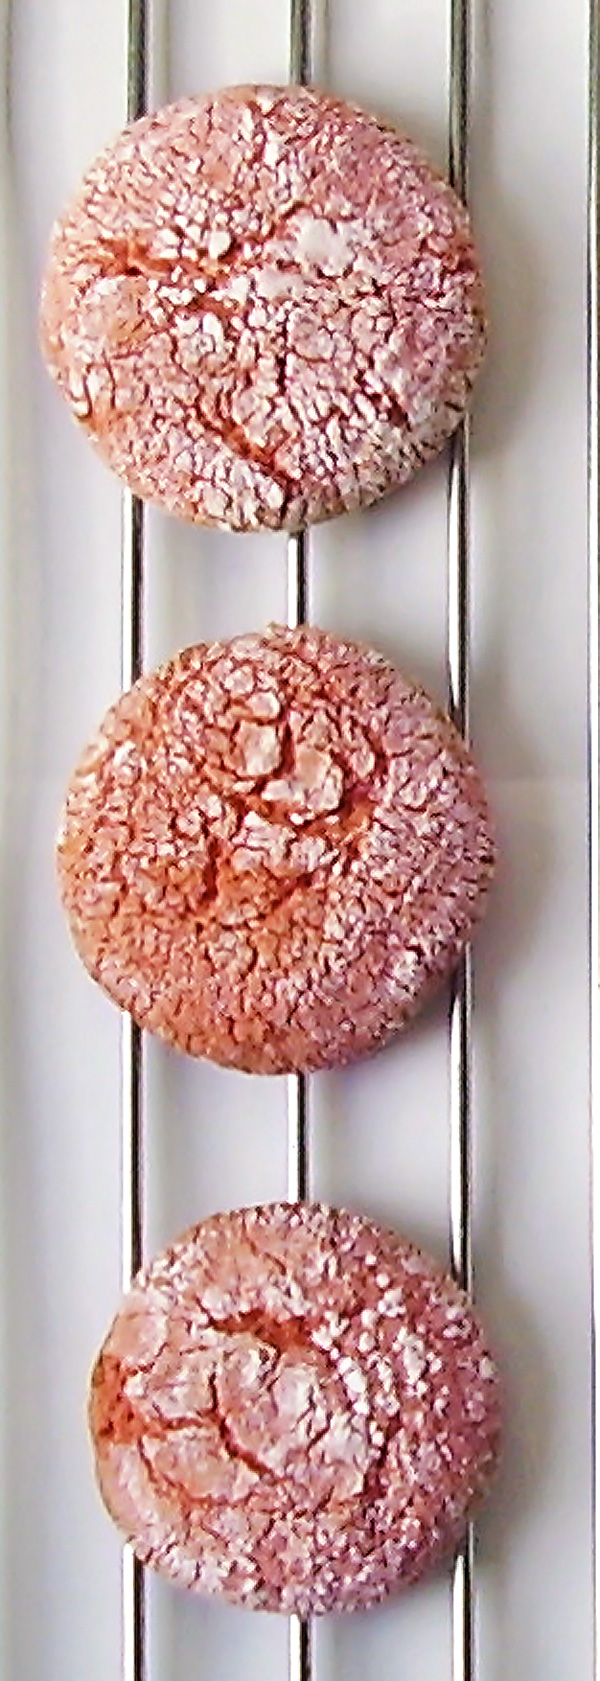 Pink Crincle Cookies : decadent pink surprise to chase the blues away.